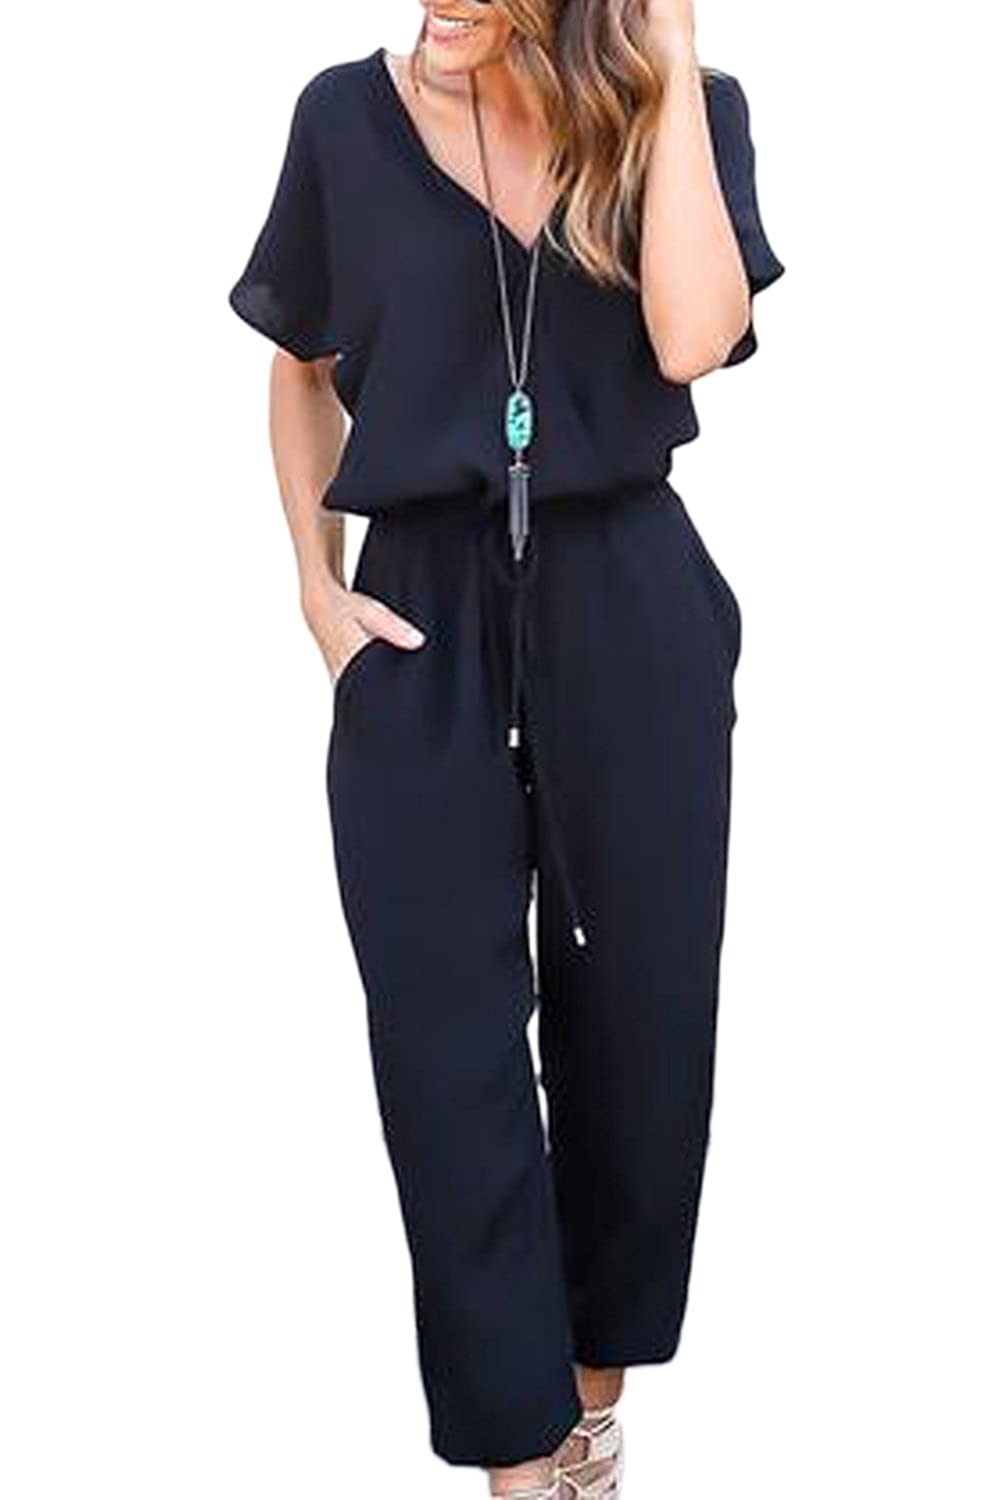 38ac49a98fb6 Mupoduvos Women Summer Plain Short Sleeve V Neck Chiffon Jumpsuit Pants  Romper  Amazon.ca  Clothing   Accessories